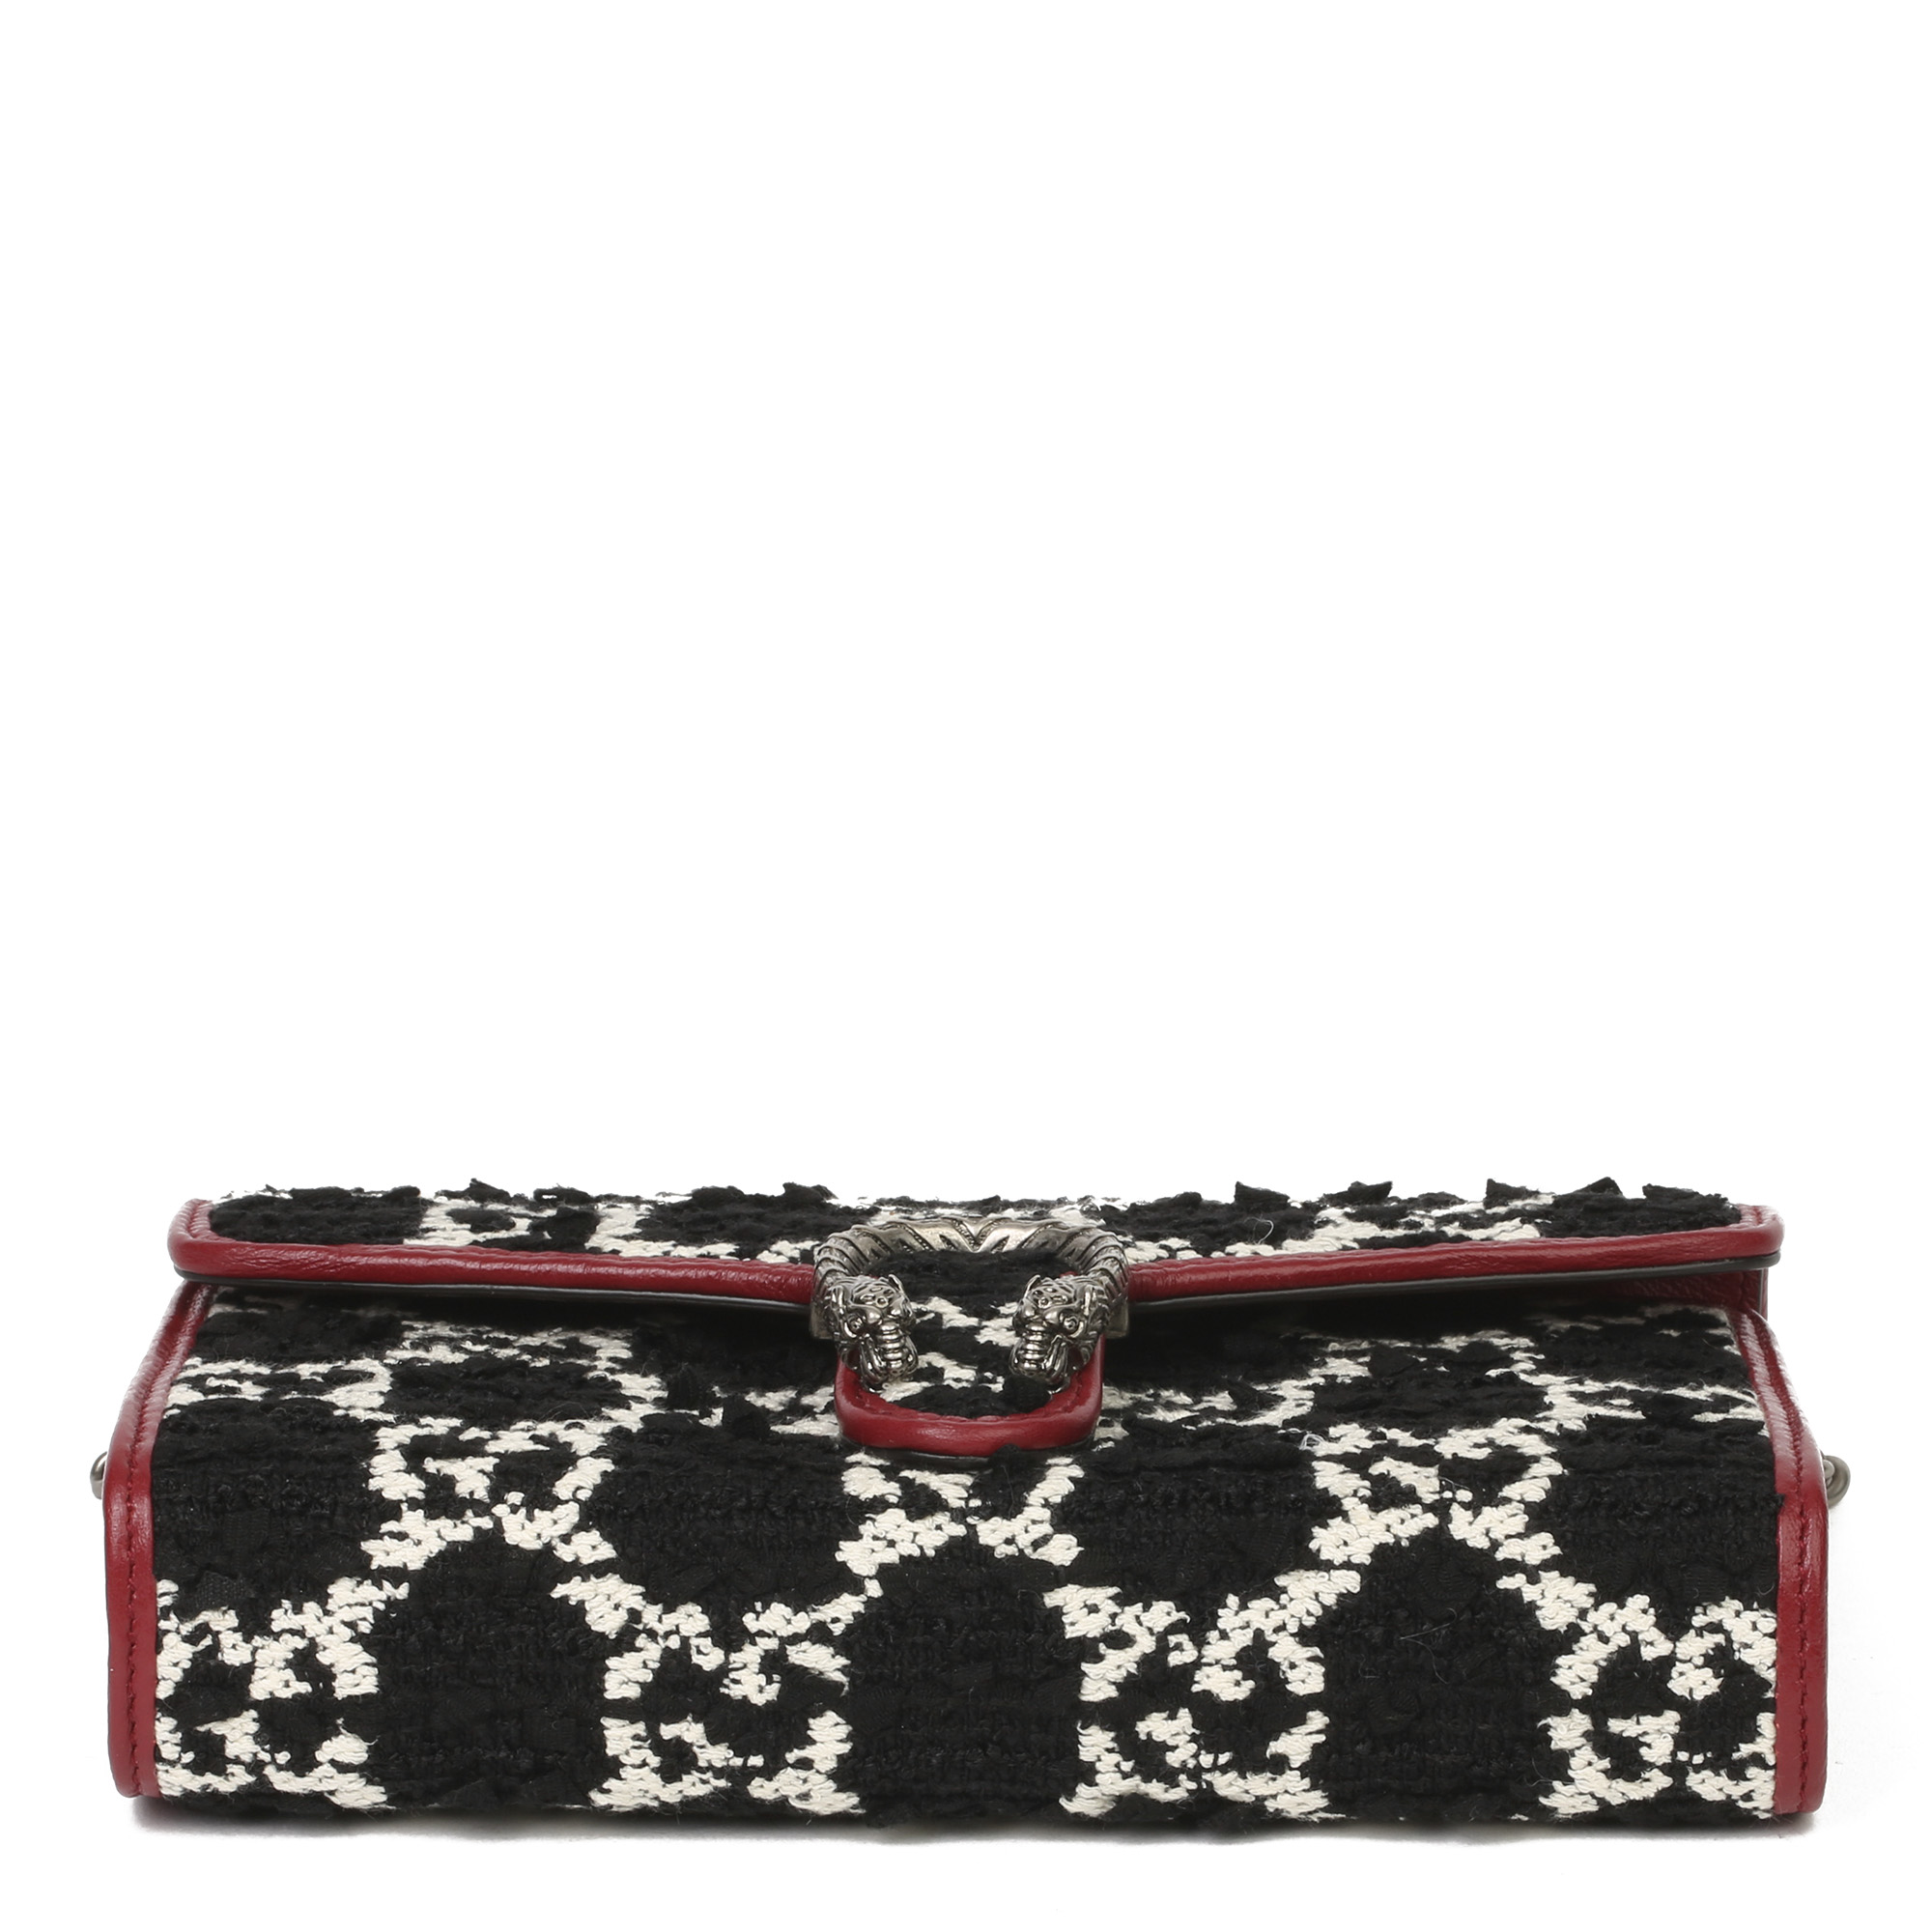 Gucci Red Calfskin & Black, White GG Tweed Dionysus Wallet-on-Chain - Image 8 of 11